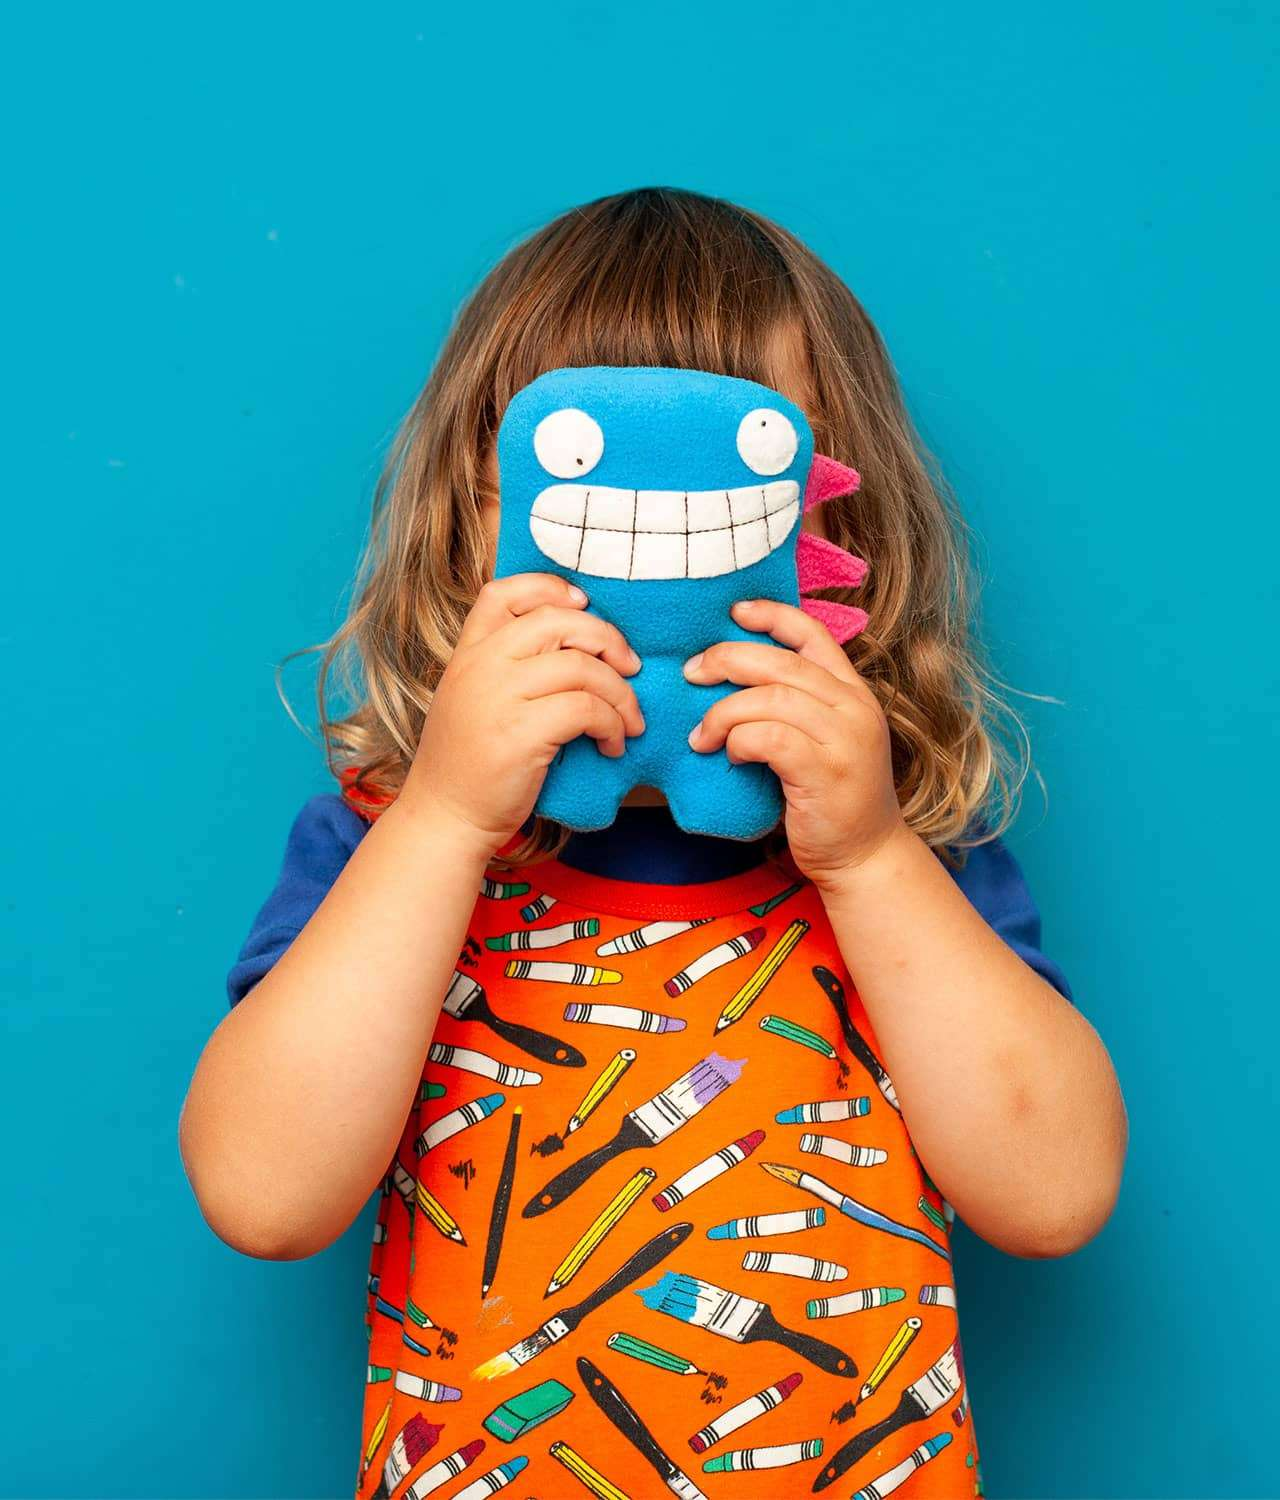 Kid playing with stuffed monster toy